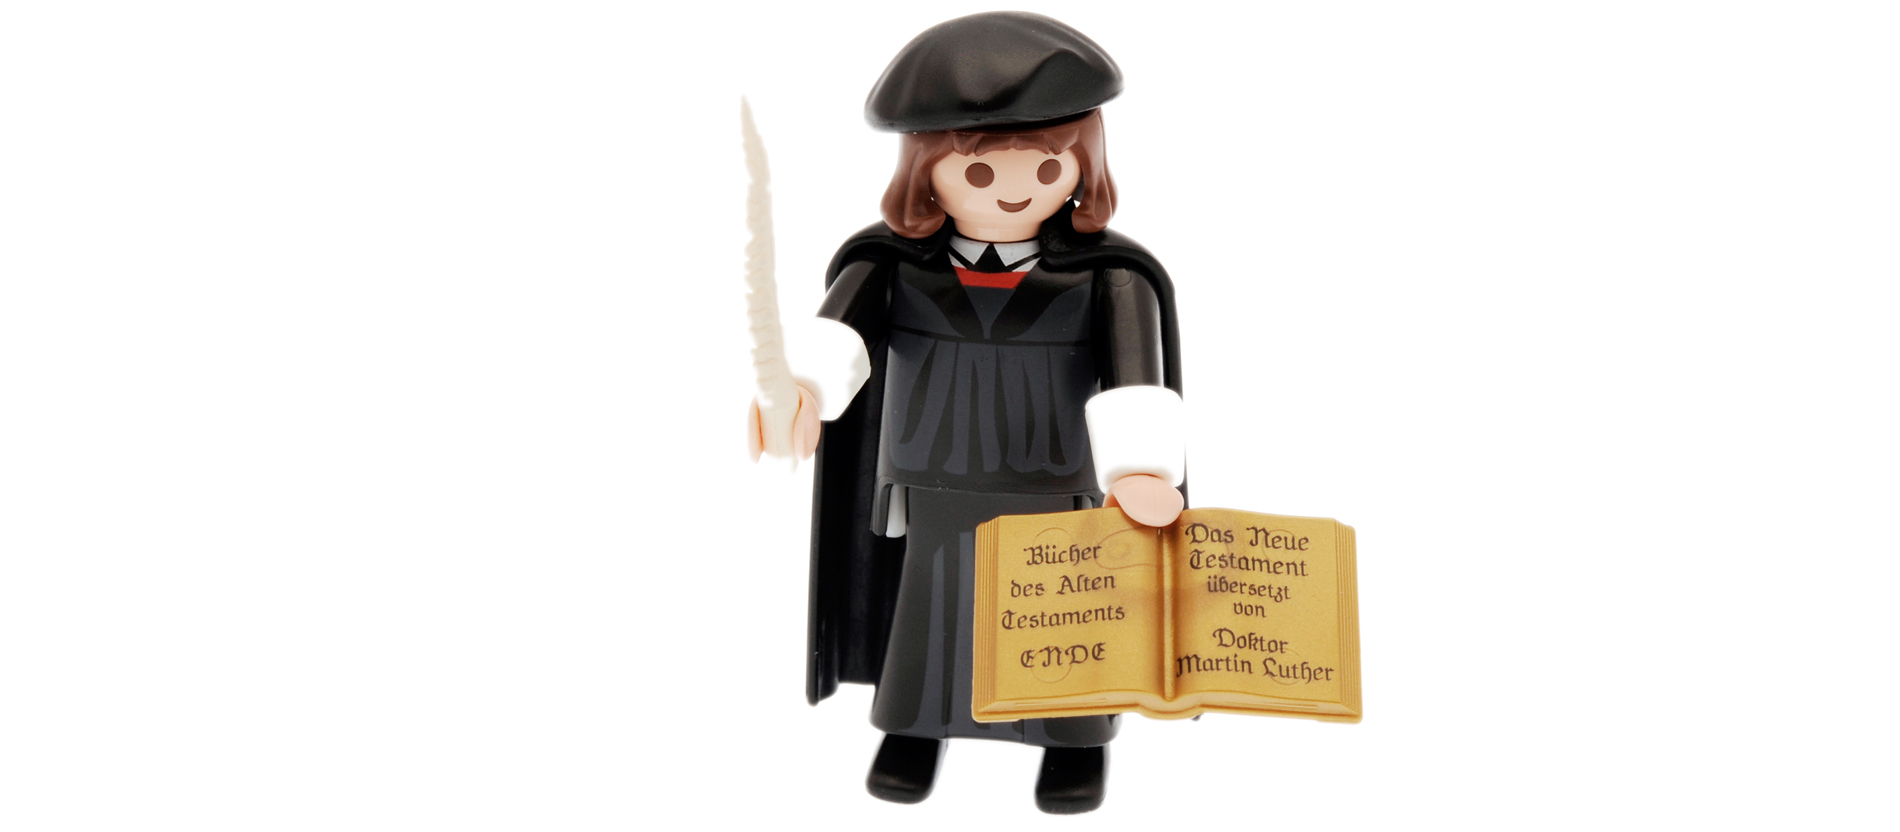 Playmobil Luther Figur